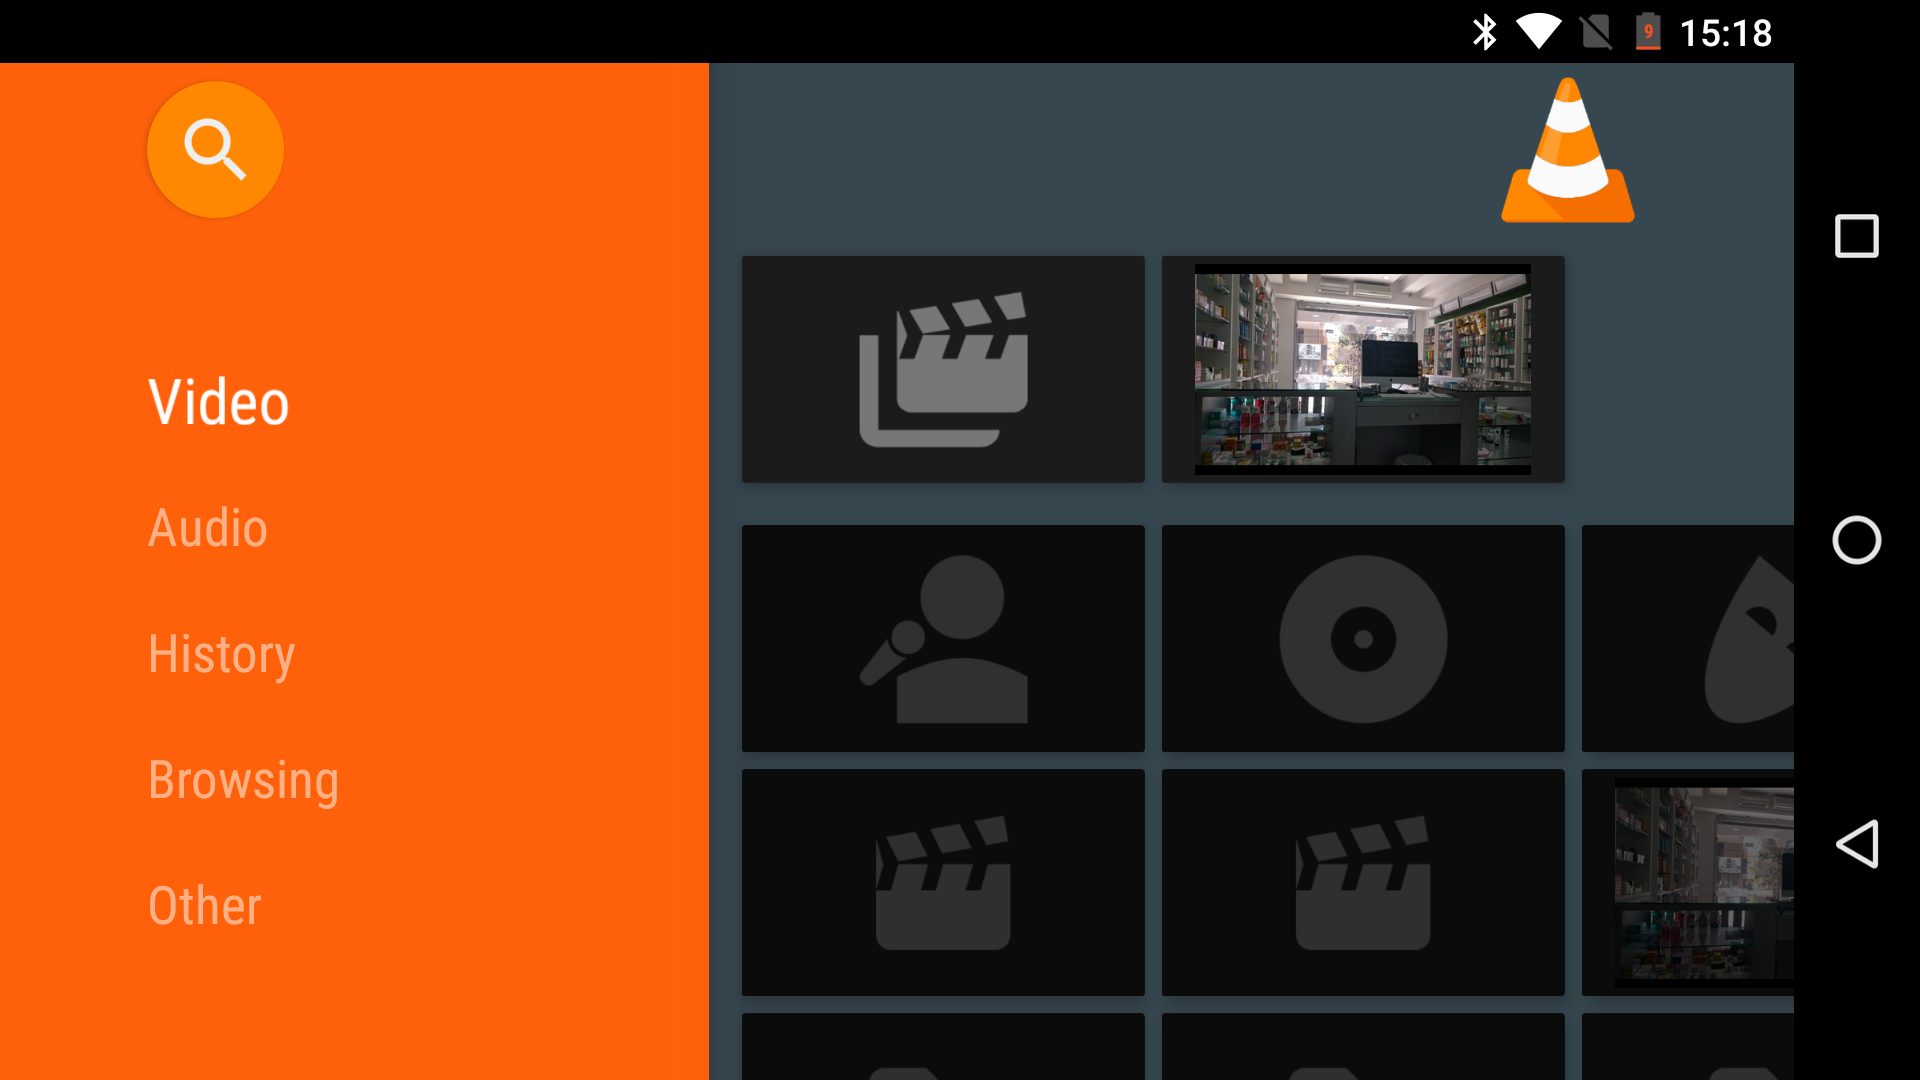 Vlc 2 0 Beta Adds Local Network Browsing And Lets You Use